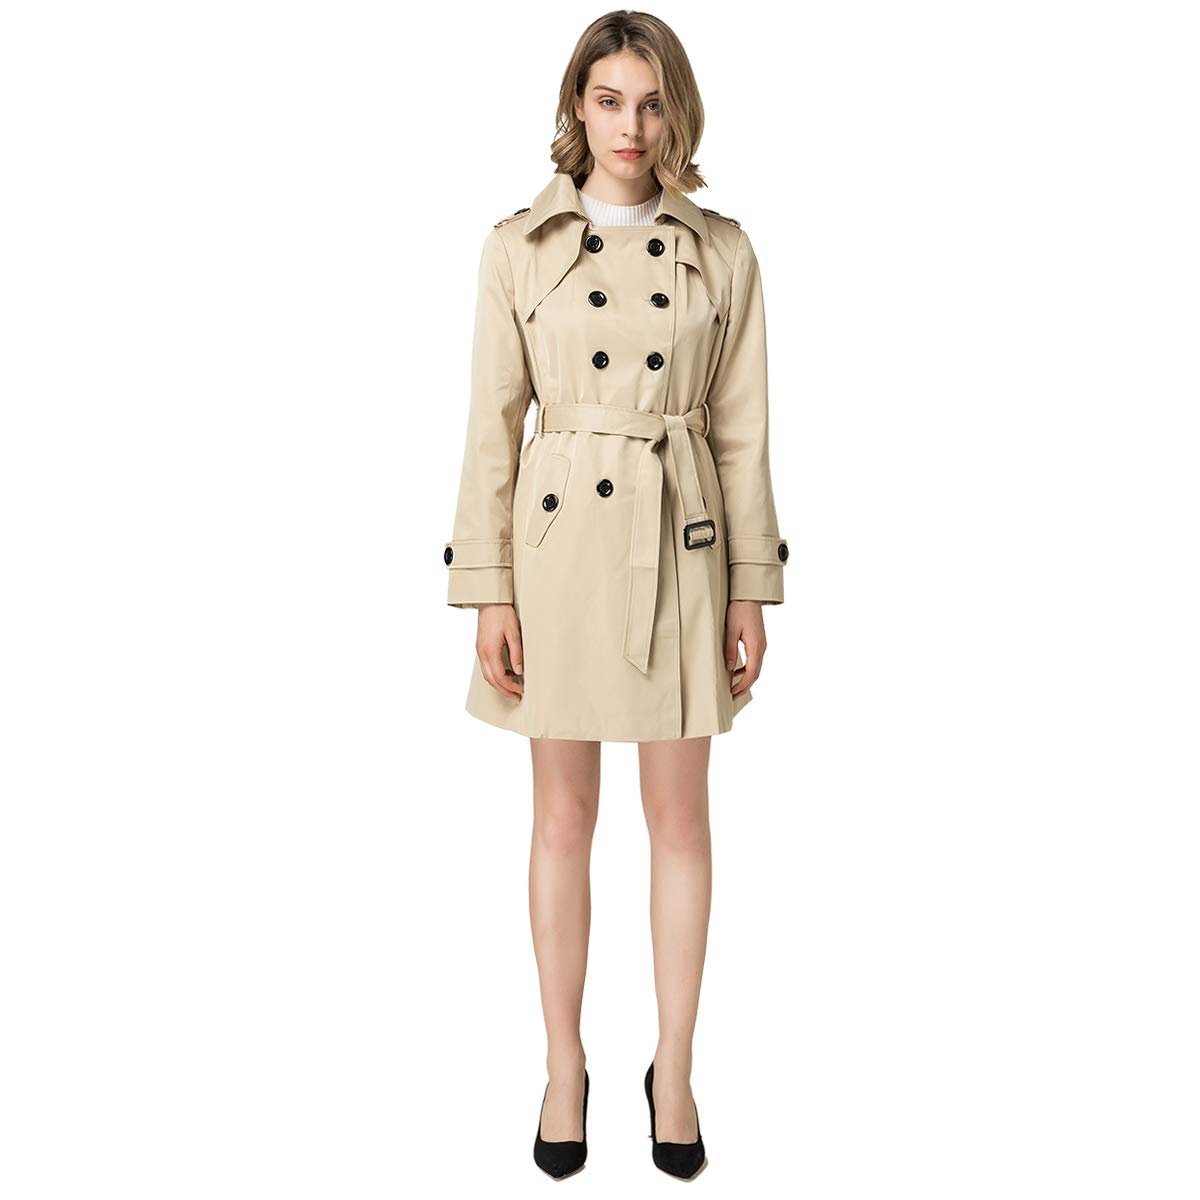 Blostirno Women's Notched Lapel Long Jacket Double Breasted Mid Length Trench Coat with Belt (Khaki US Size-6 / Asian Size L)